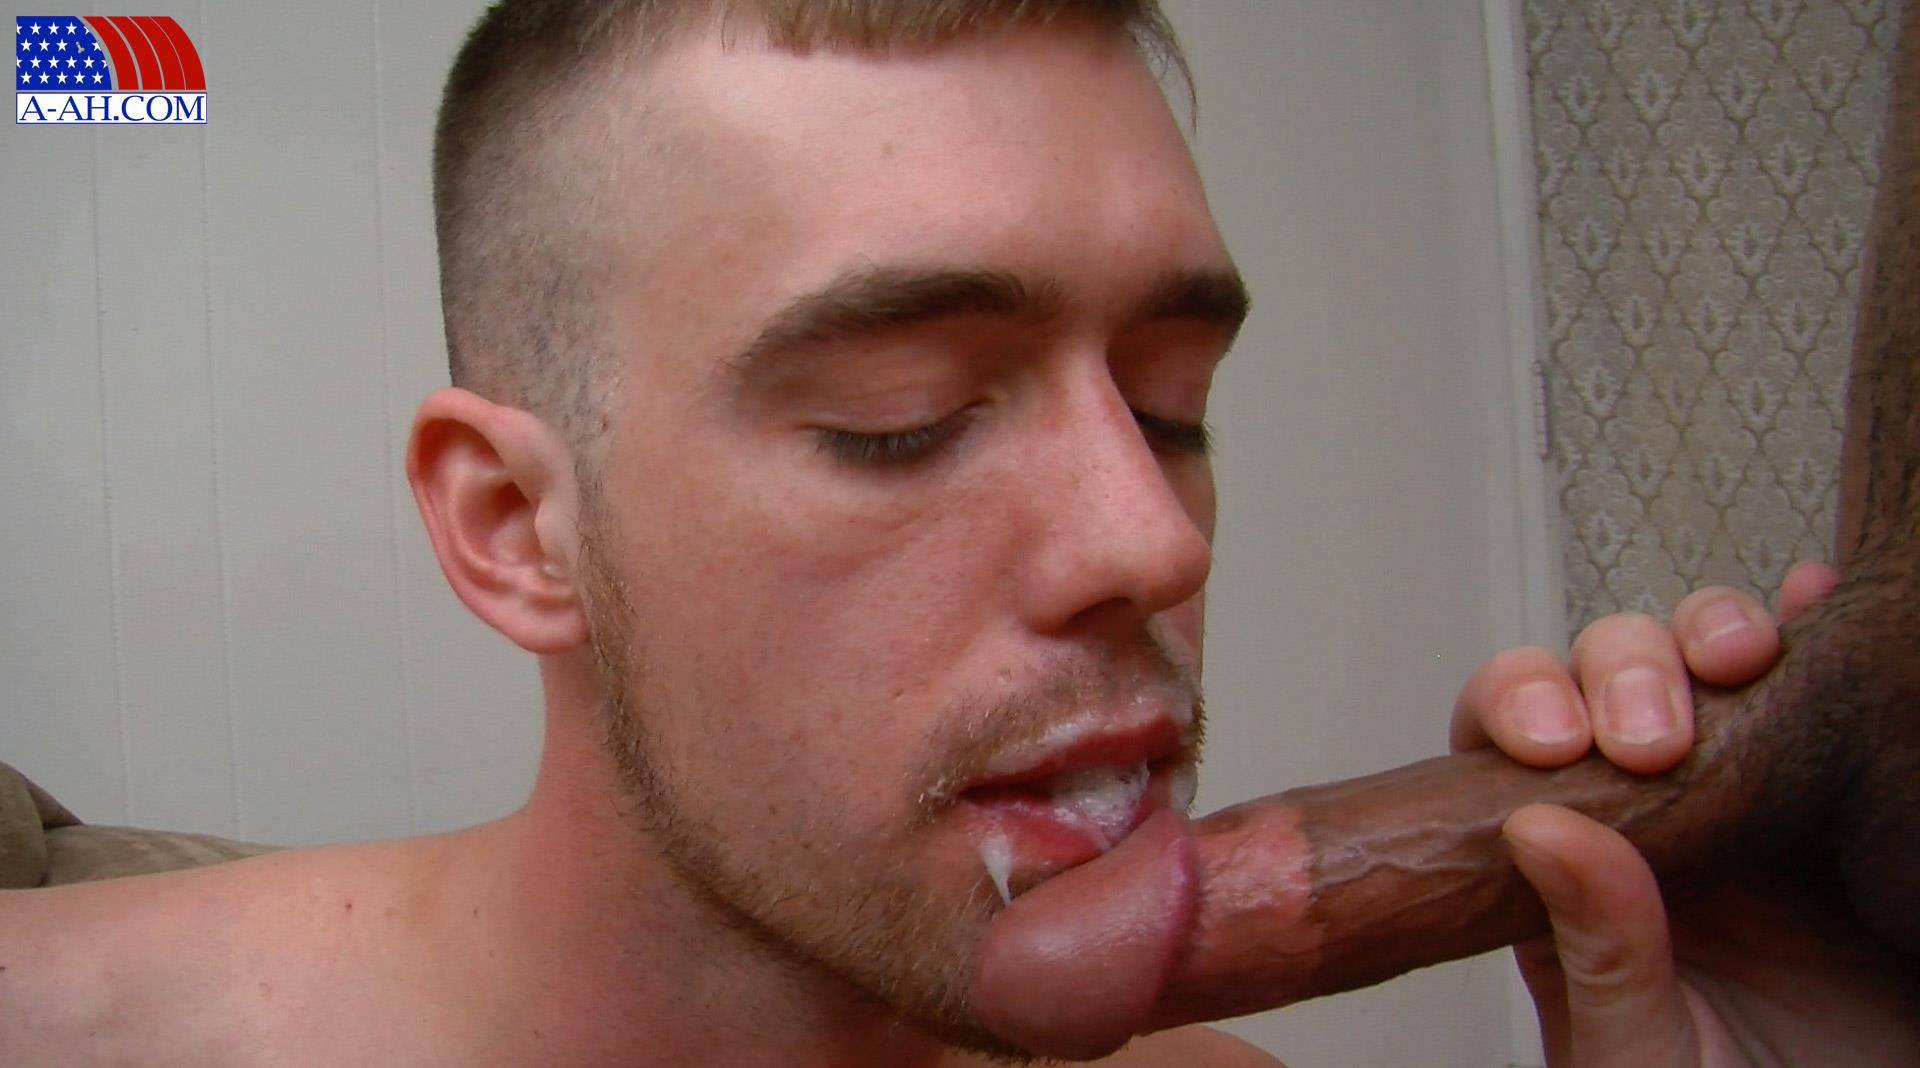 All American Heroes JD and Alex Army Guys Fucking Bareback Naked Soldiers Amateur Gay Porn 15 Army Staff Sergeant Getting Barebacked By Another Solider